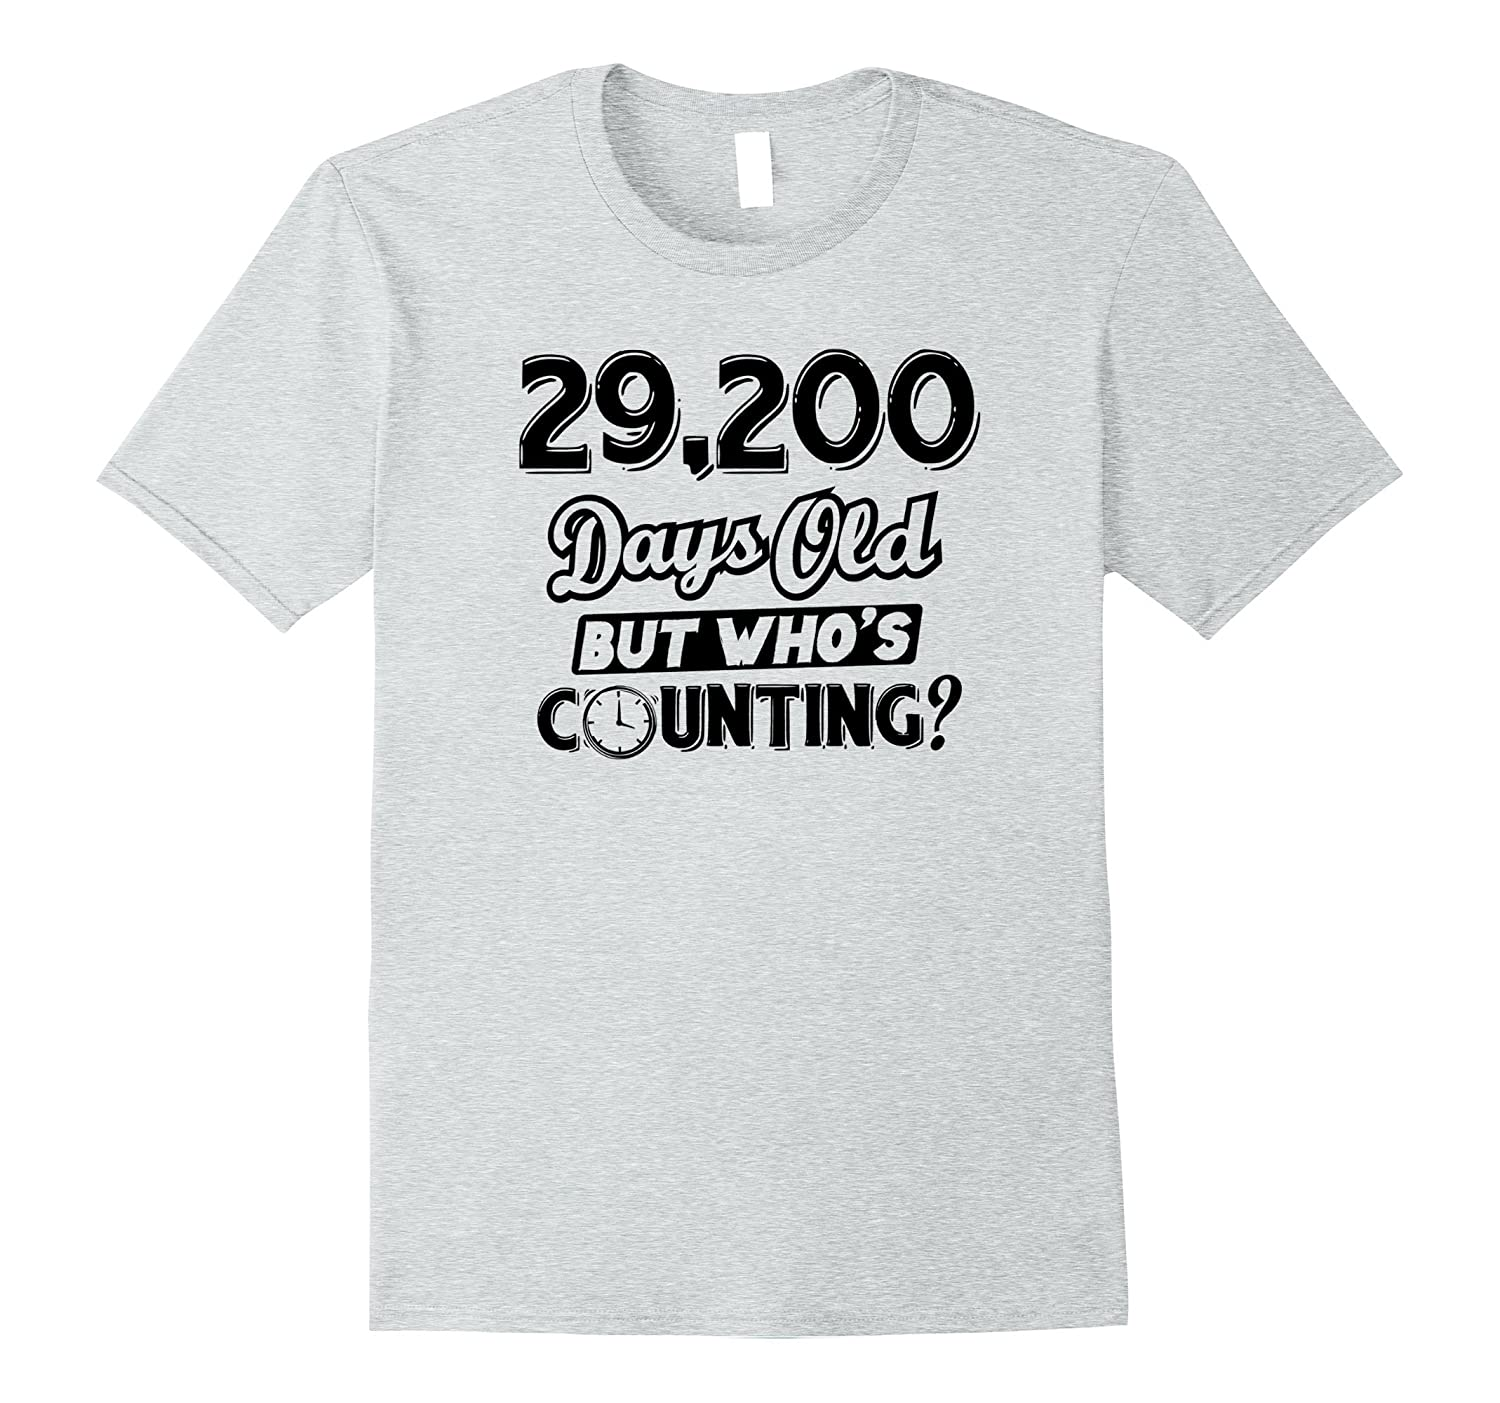 Funny 29200 Days Old 80th Birthday T Shirt 80 Year Geek Gift ANZ